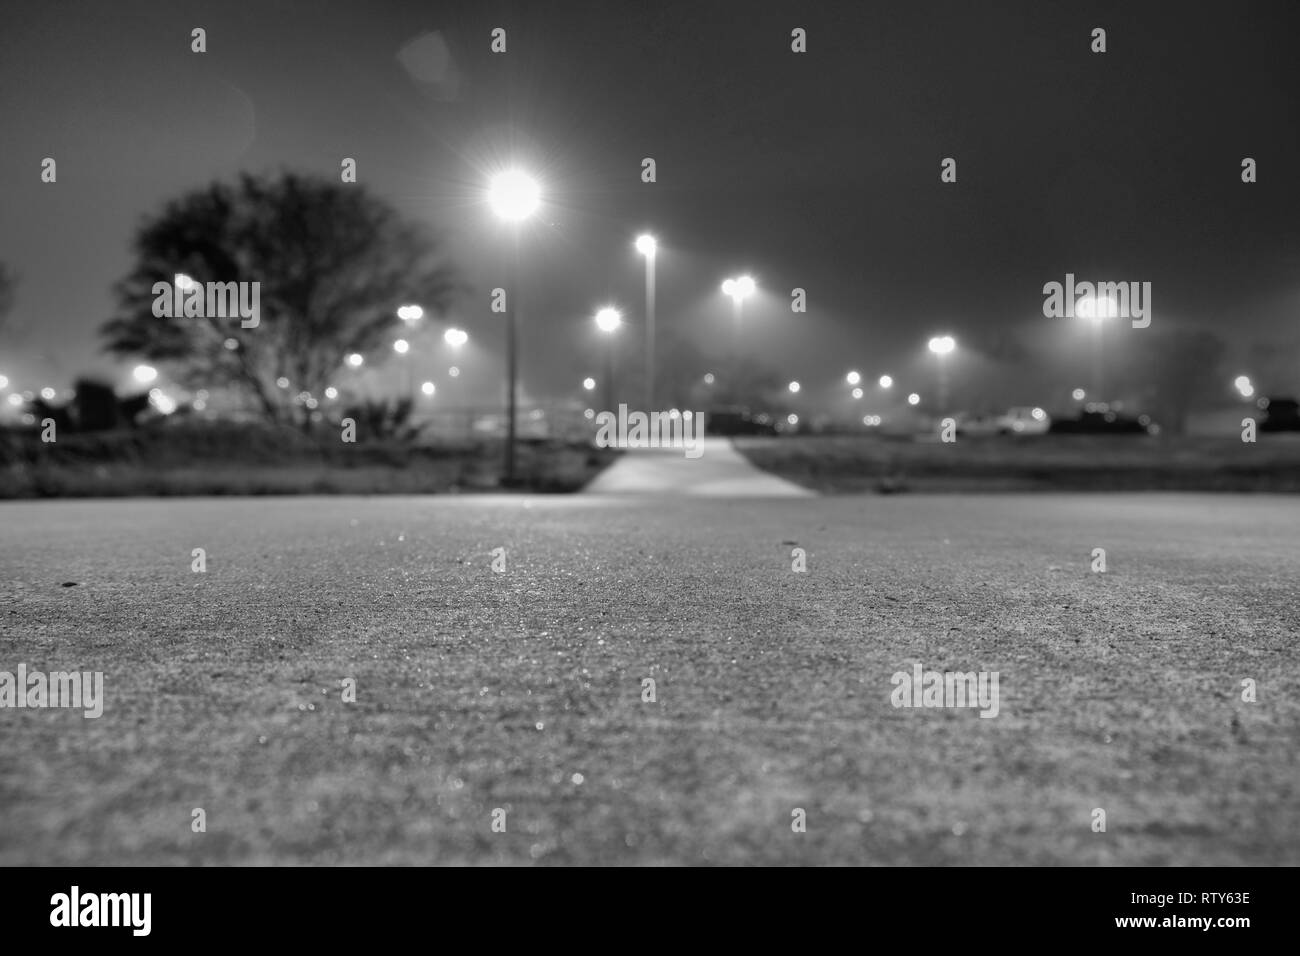 Low perspective view of a cement walkway with streetlights causing lens flare; focus on immediate space in front of lens; College Station, Texas, USA. - Stock Image